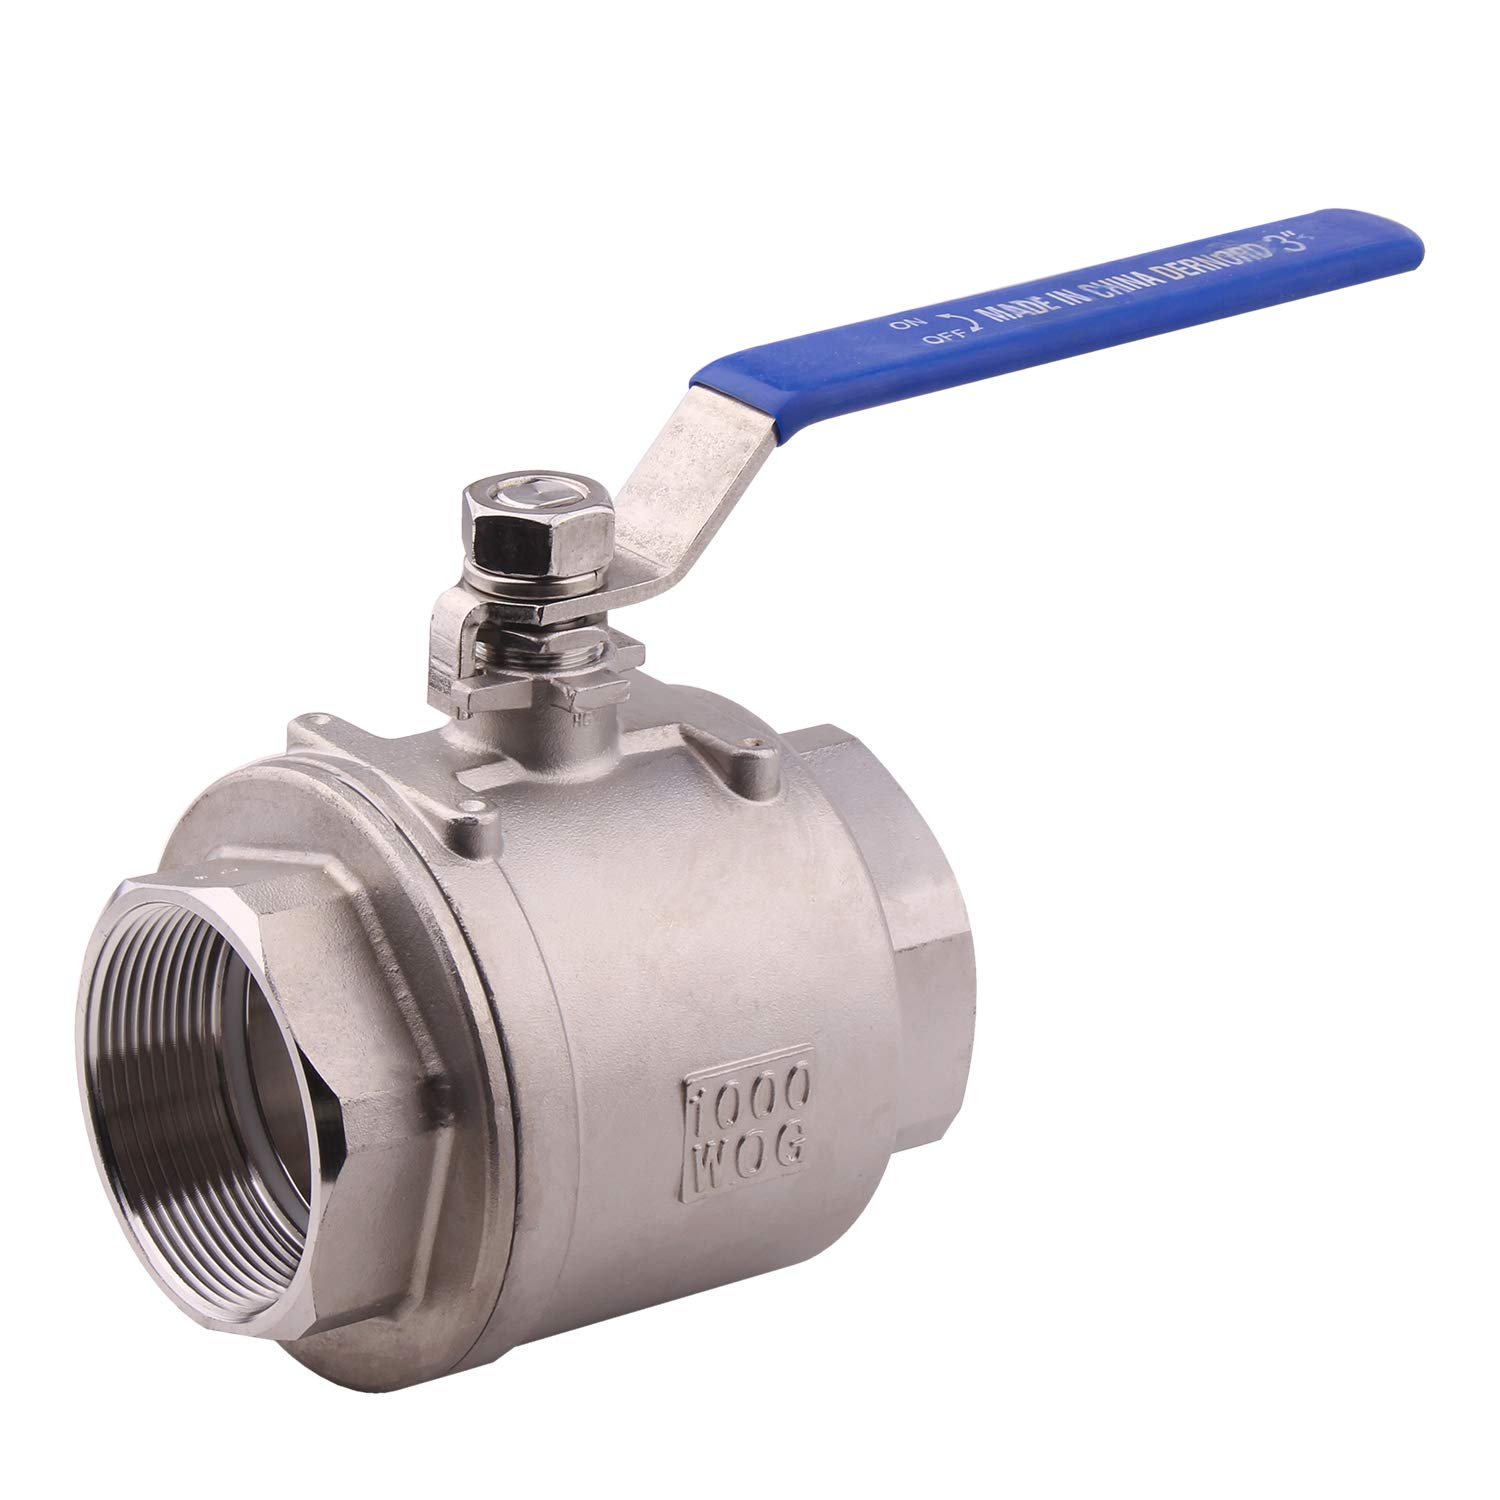 DERNORD Full Port Ball Valve Stainless Steel 304 Heavy Duty for Water, Oil, and Gas with Blue Locking Handles (3'' NPT)